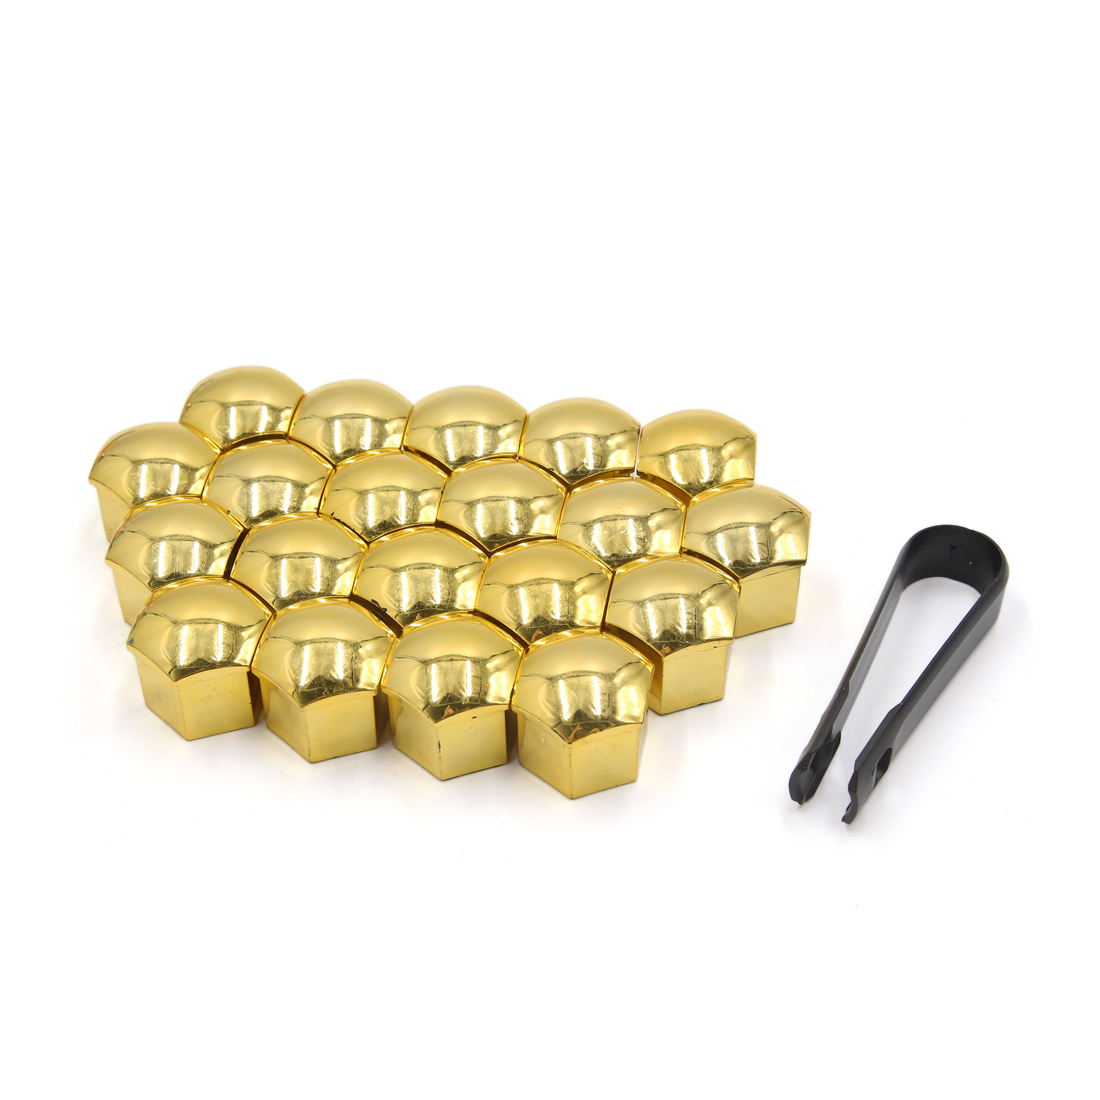 20pcs 17mm Gold Tone Plastic Car Wheel Lug Nut Bolt Cover Caps with Removal Tool